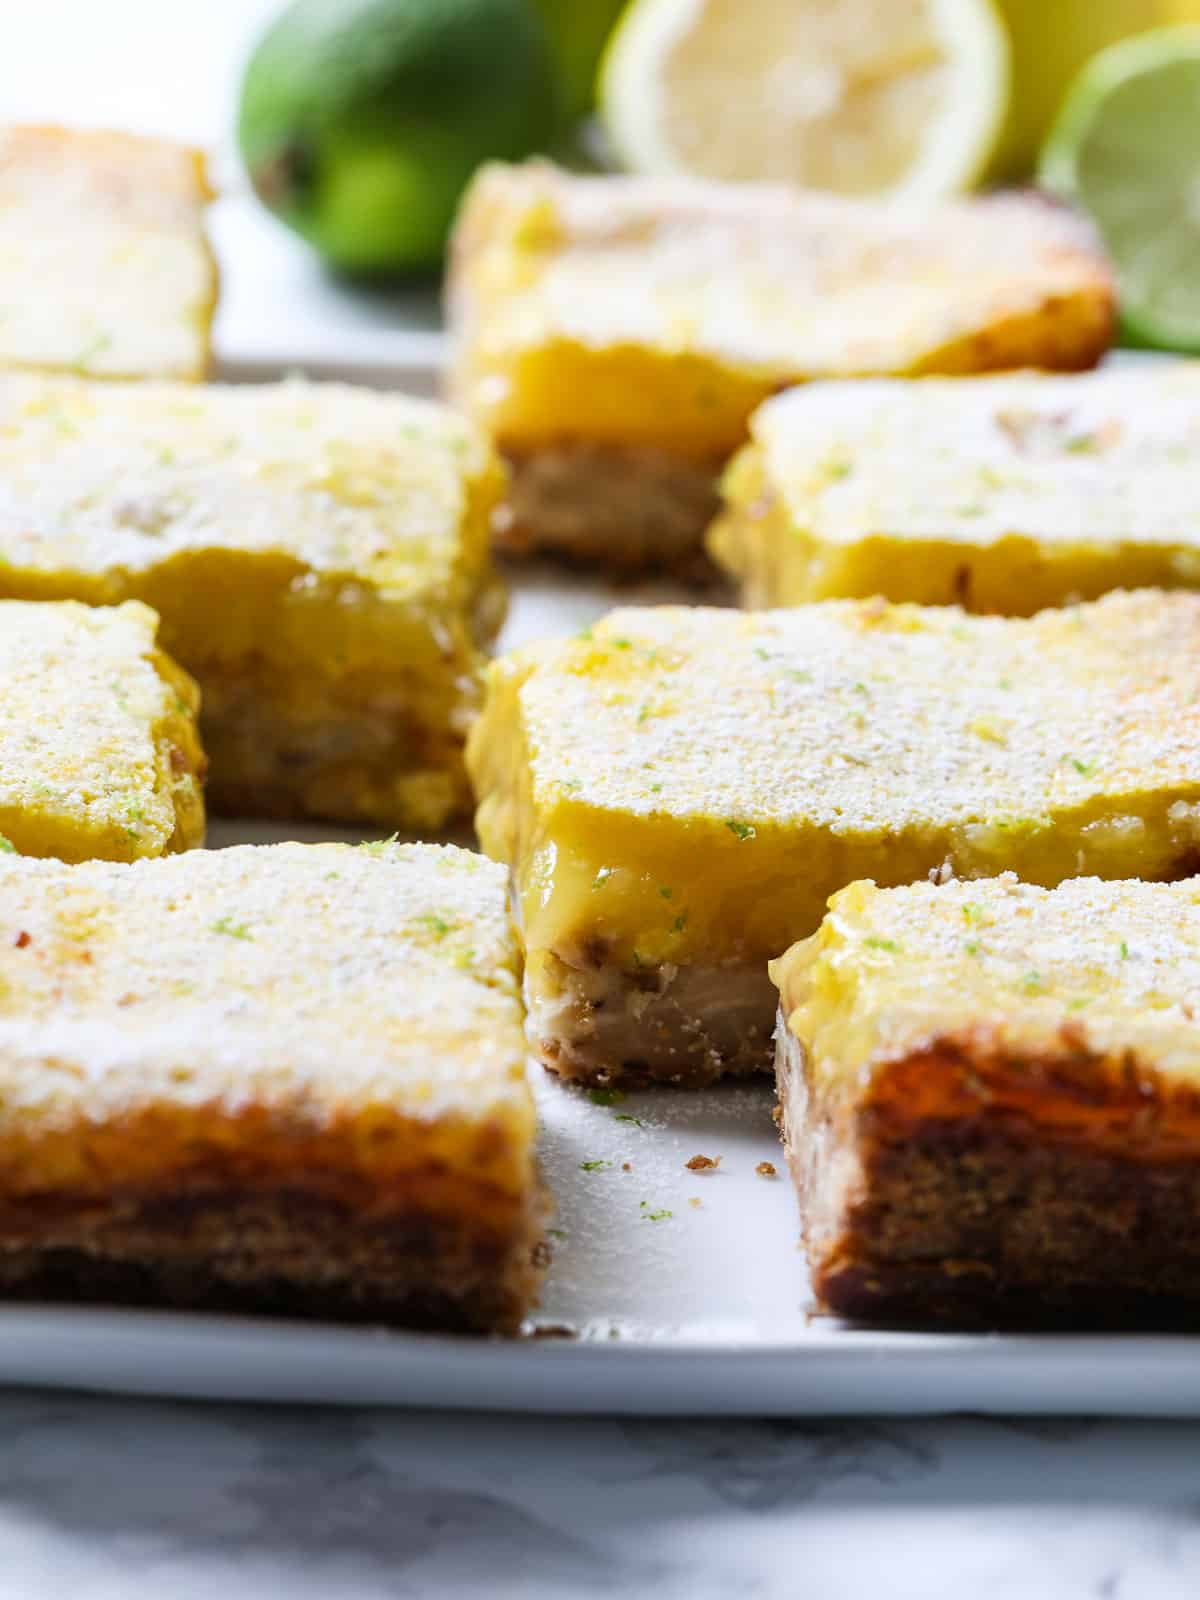 Large slice lemon bars dusted with powder sugar and lime zest on a white plate.